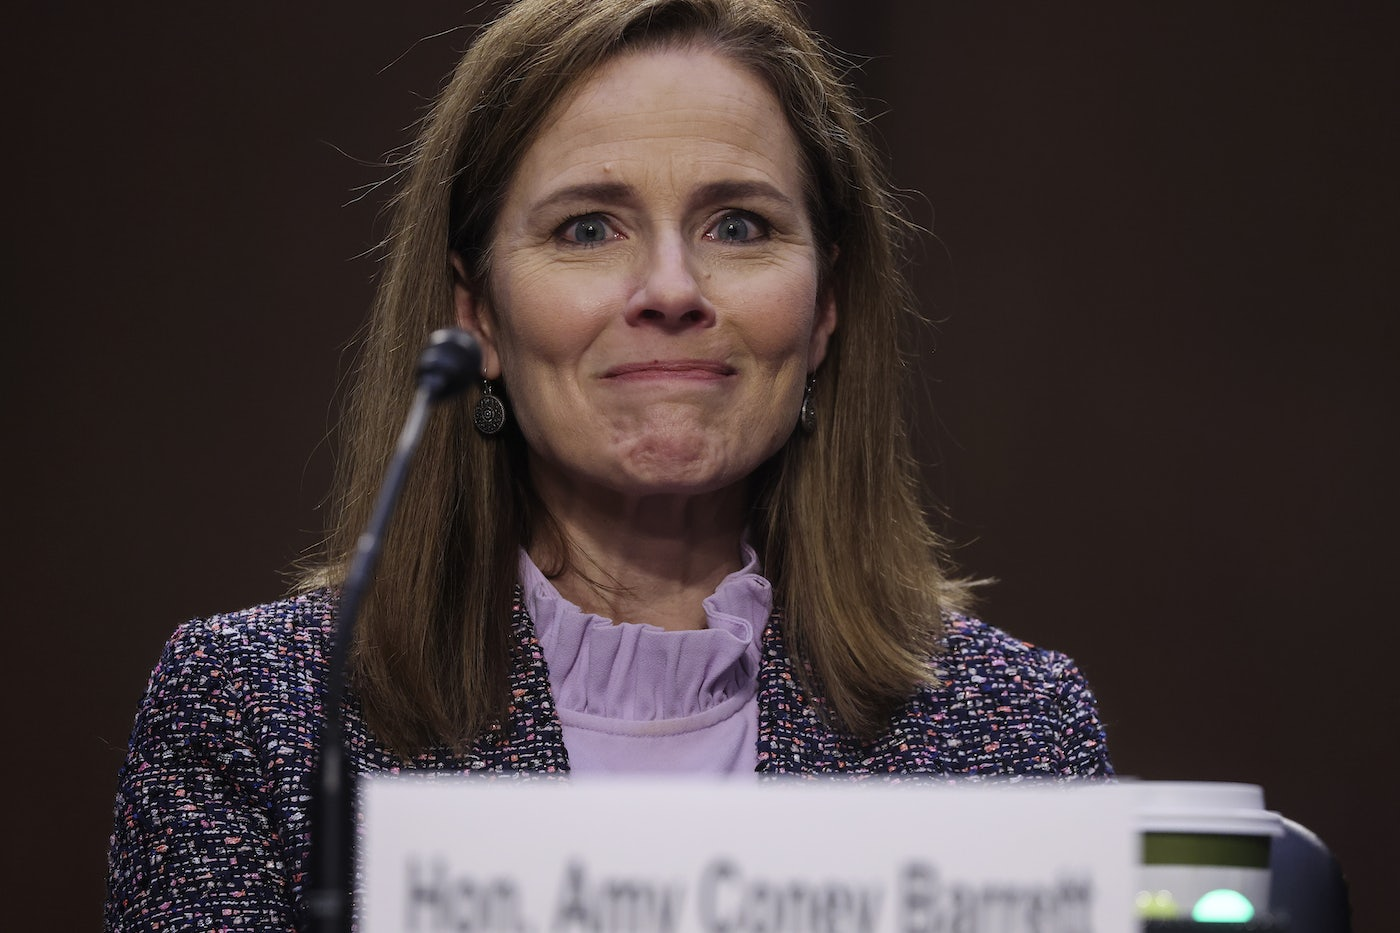 Amy Coney Barrett at the Supreme Court hearings this week